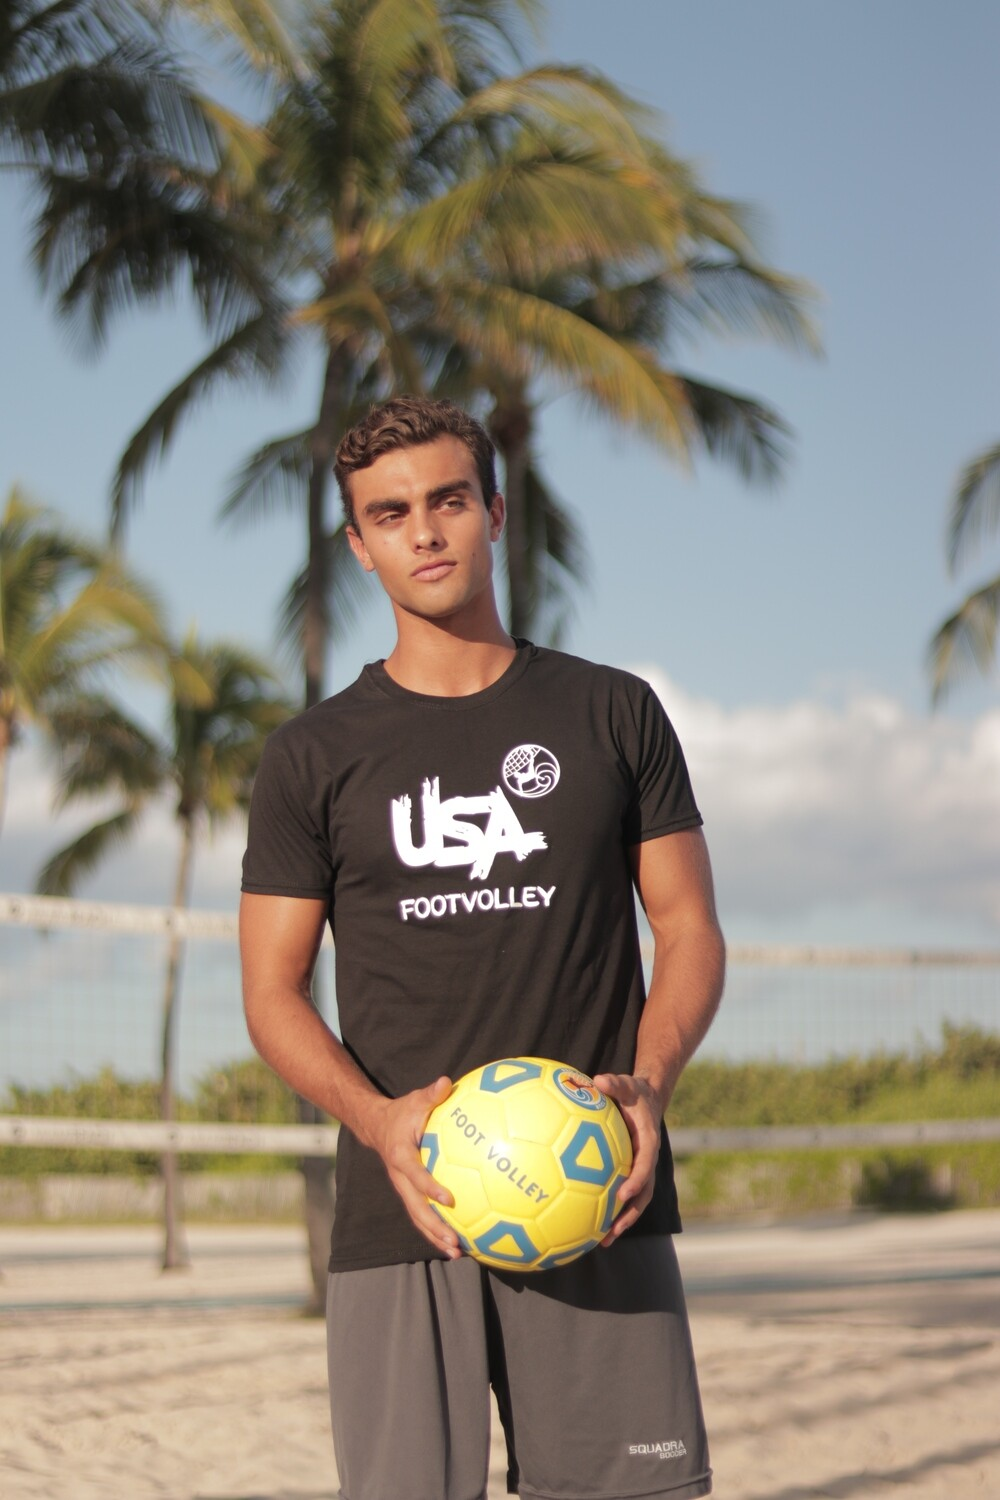 USA Footvolley T-Shirt